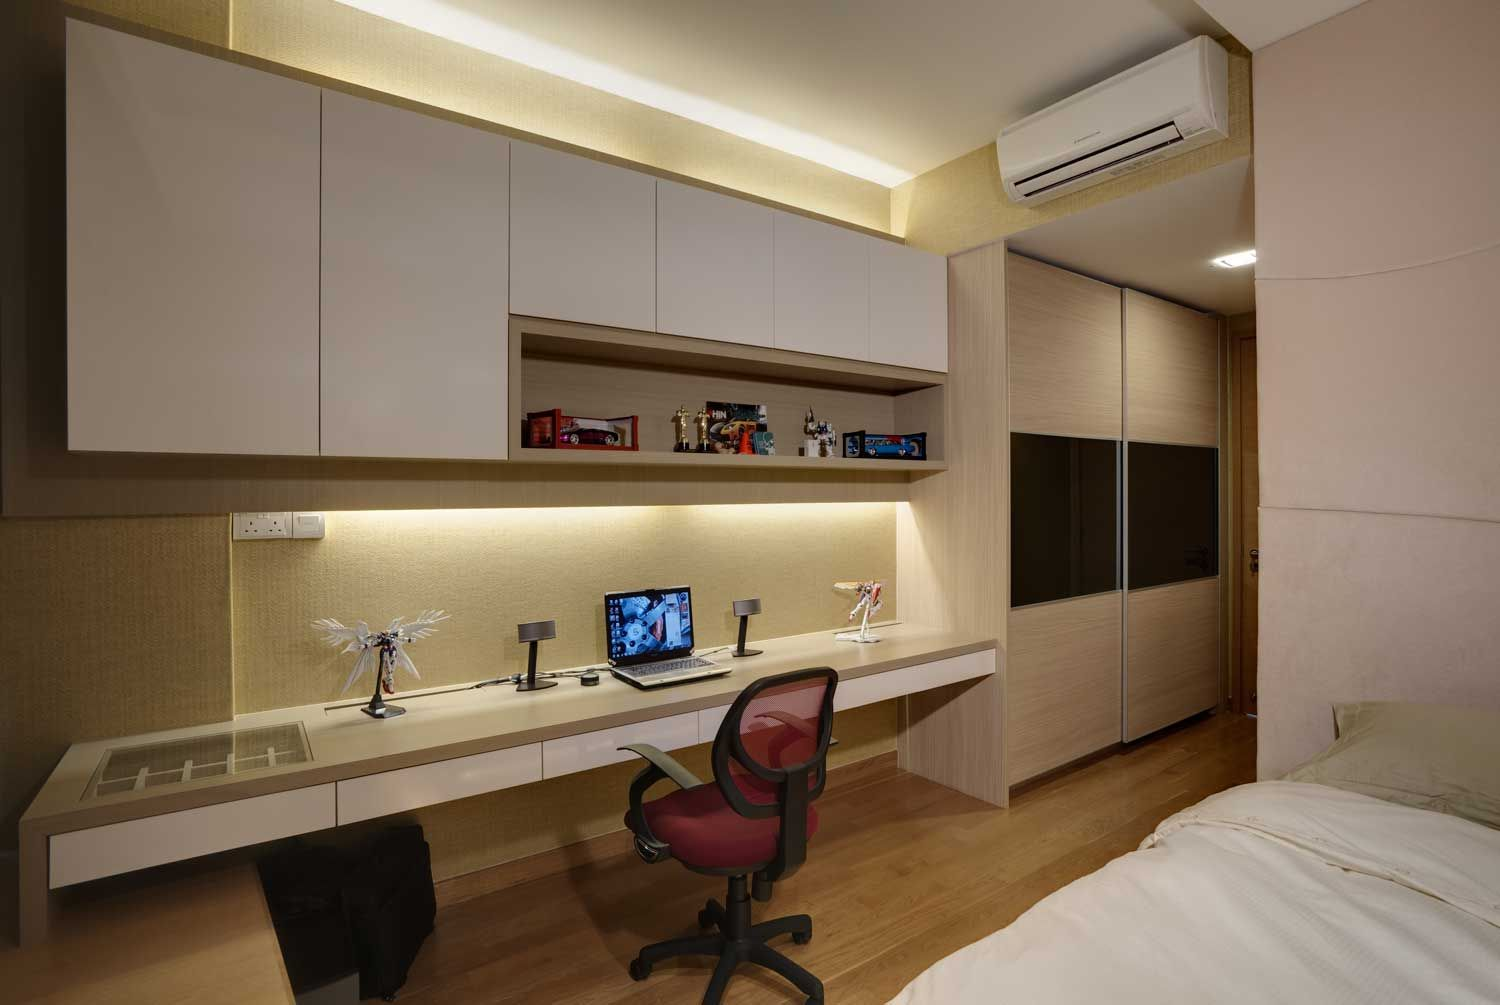 Singapore modern study room design google search Study room wall cabinets